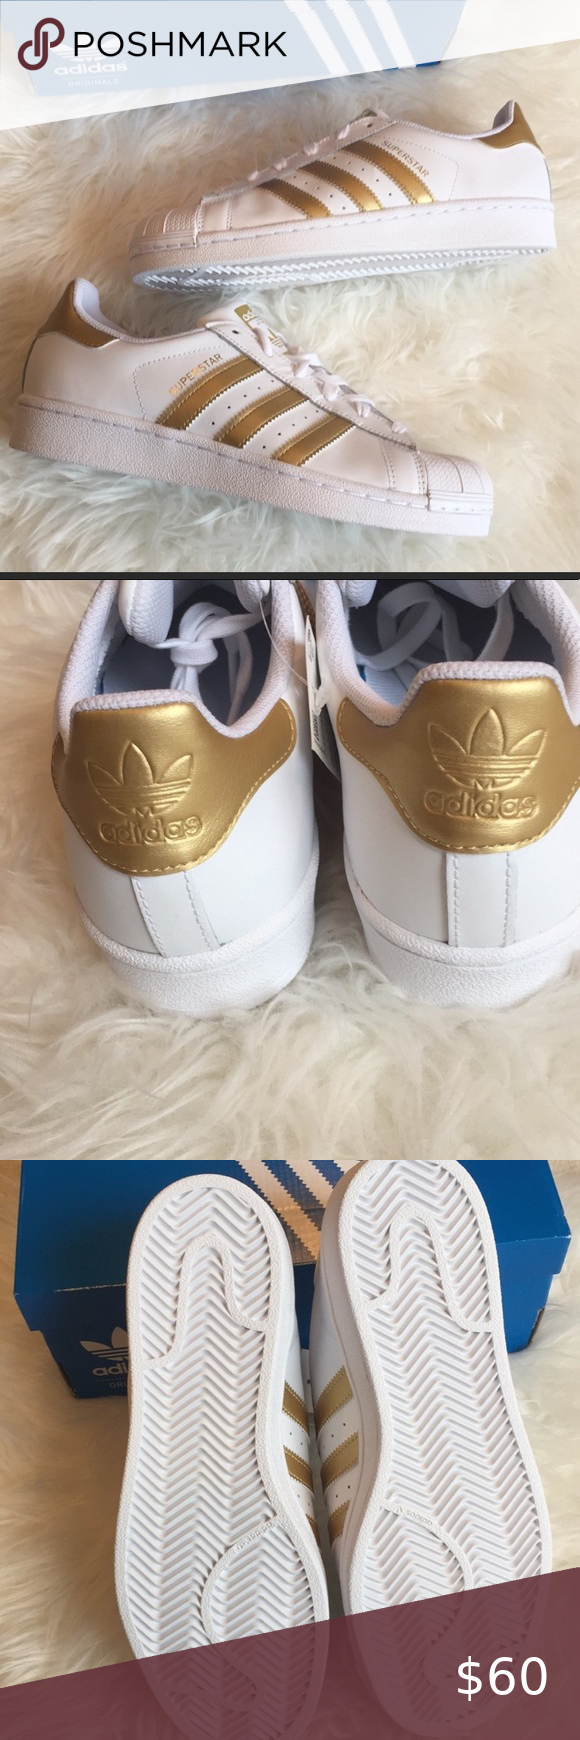 Adidas Superstar womens sneakers white gold stripe Size 6.5